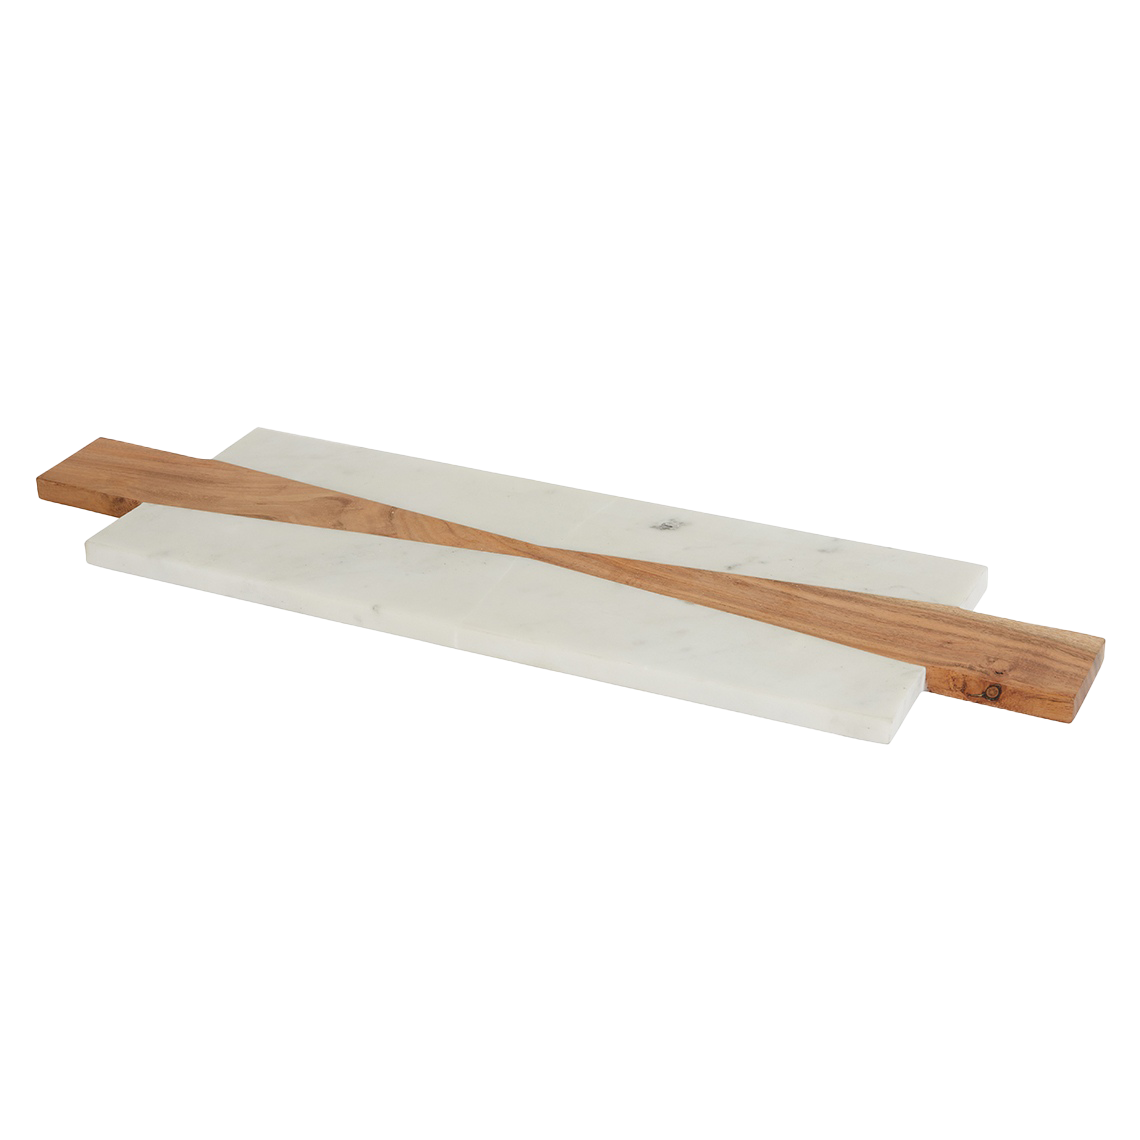 39137 Popular Category - Deep etches_Cheese & Serving Board.png